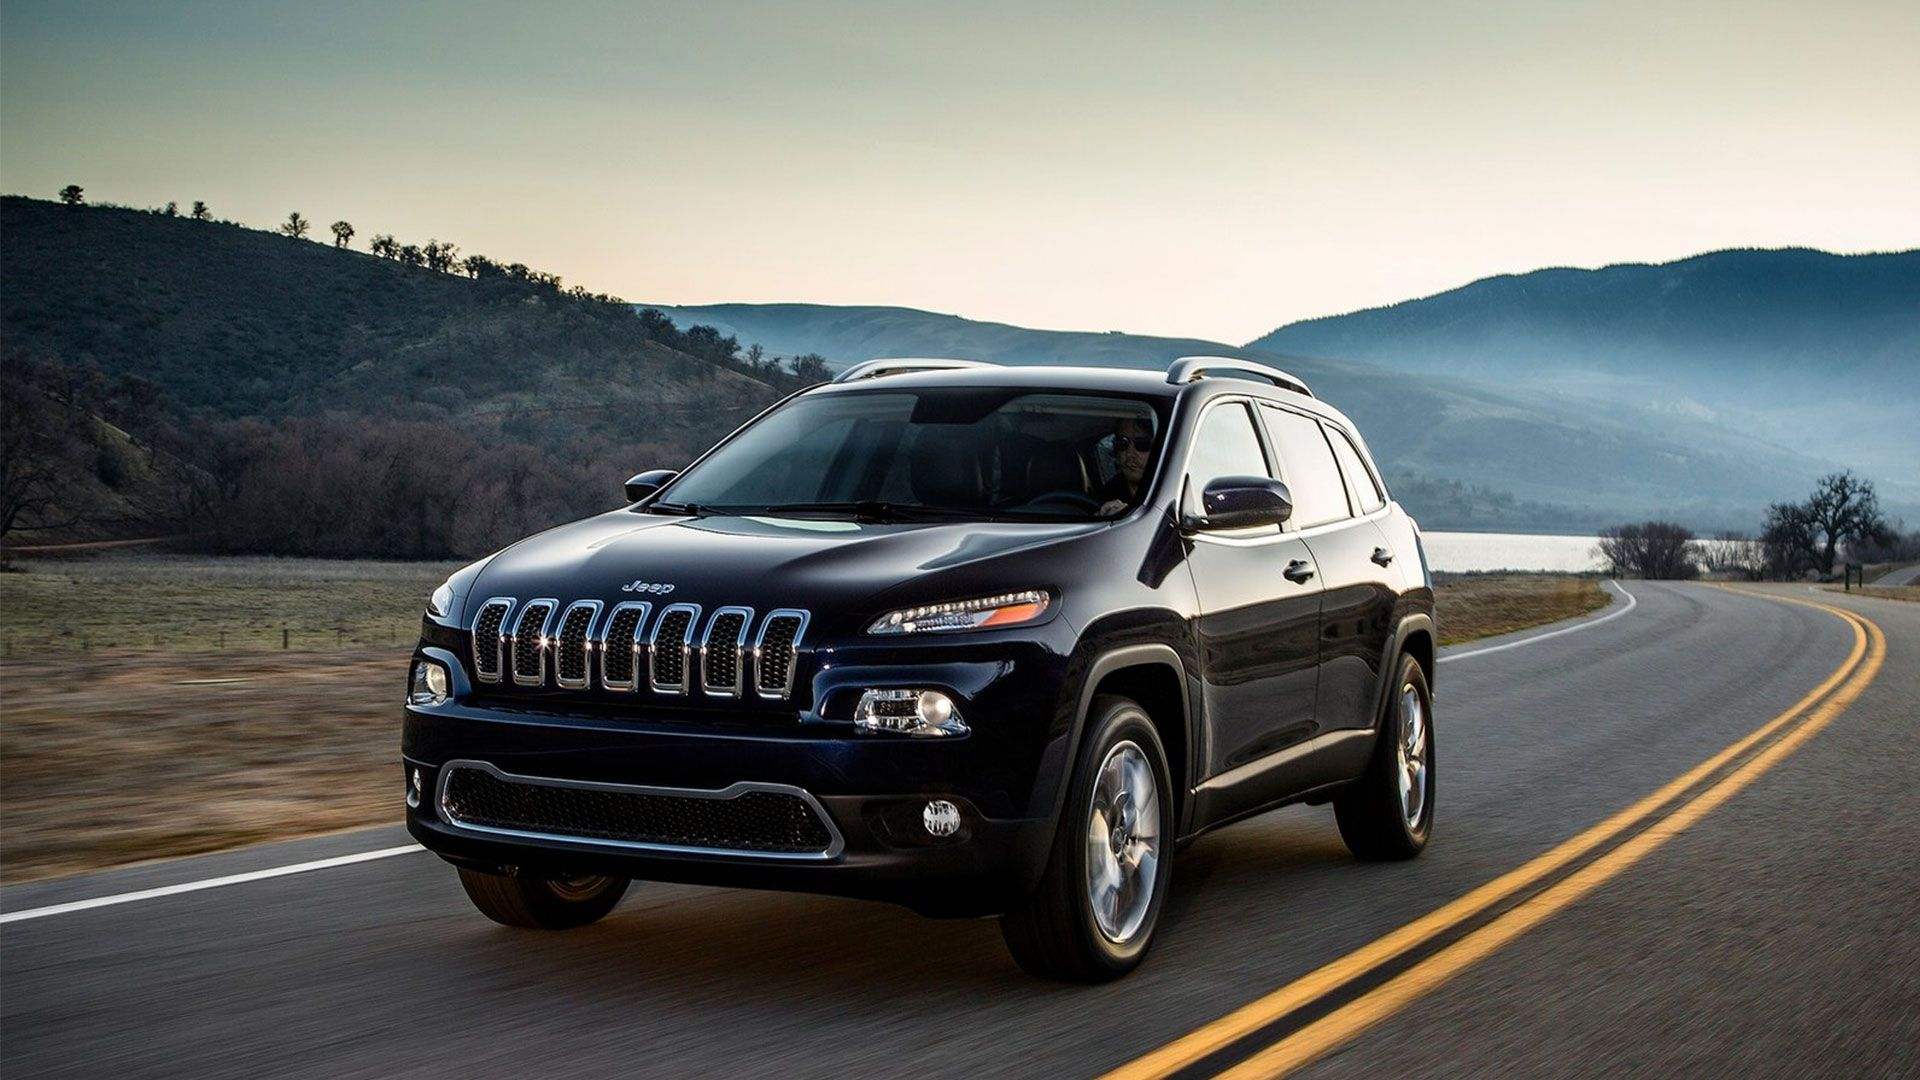 Be the lucky grand prize winner to drive home a 2015 jeep cherokee limited us only daily entry ends october enter now